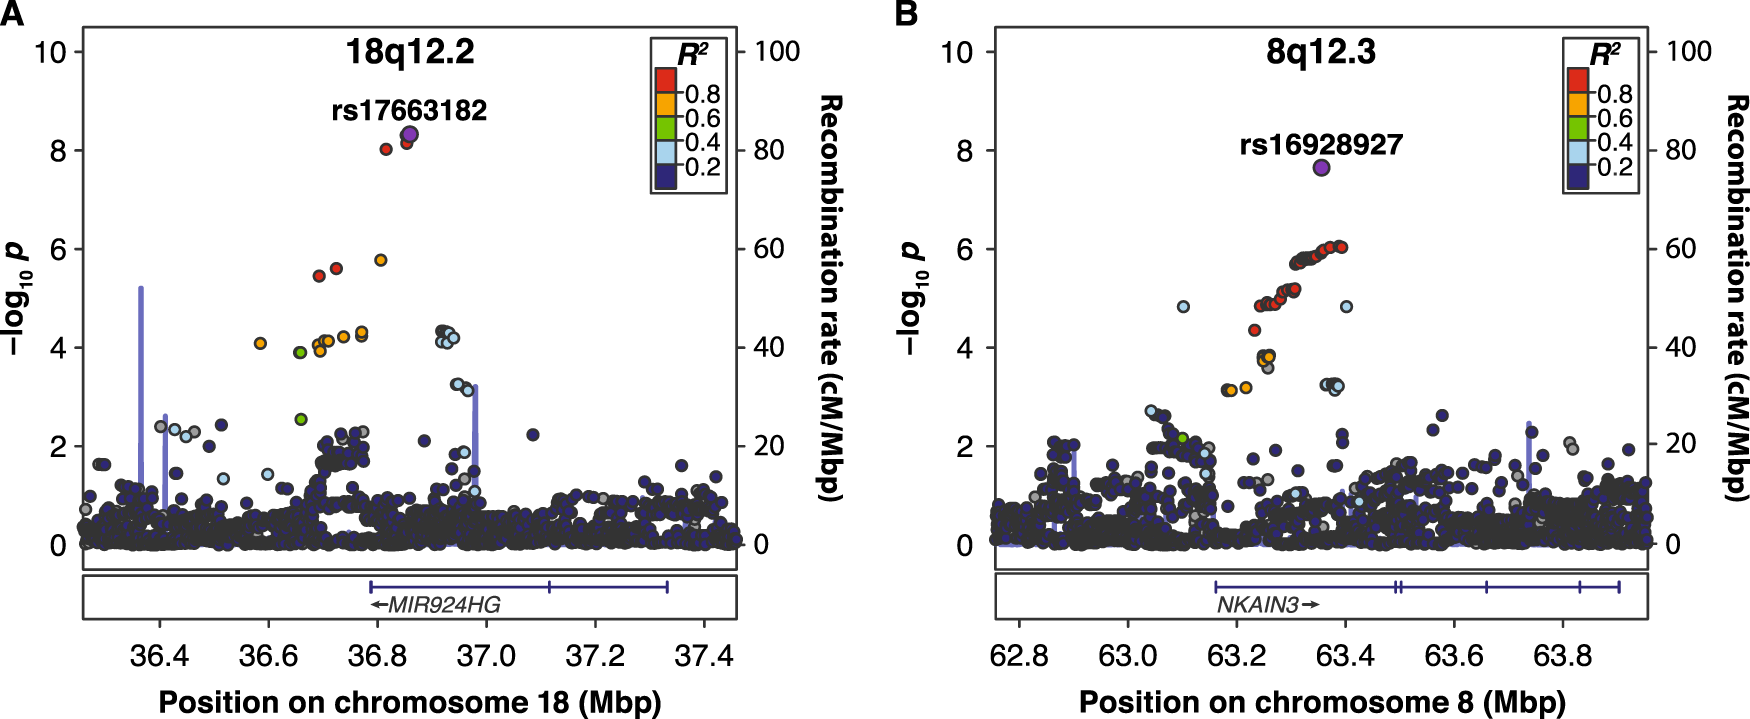 Discovery Of The First Genome Wide Significant Risk Loci For Attention >> Genome Wide Association Scan Identifies New Variants Associated With